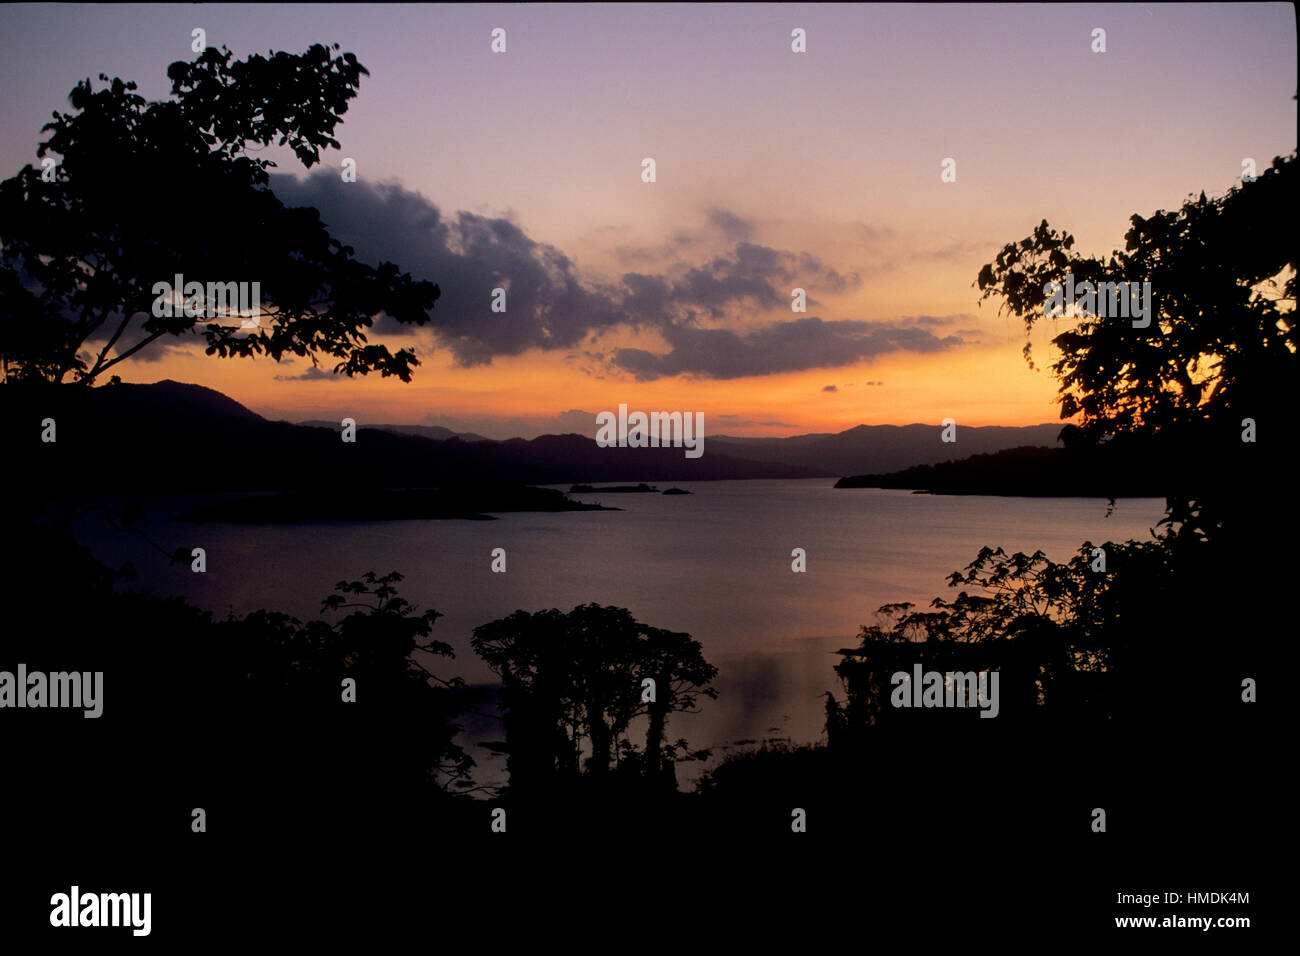 Lake Arenal at sunset, looking west. Arenal National Park, Costa Rica - Stock Image